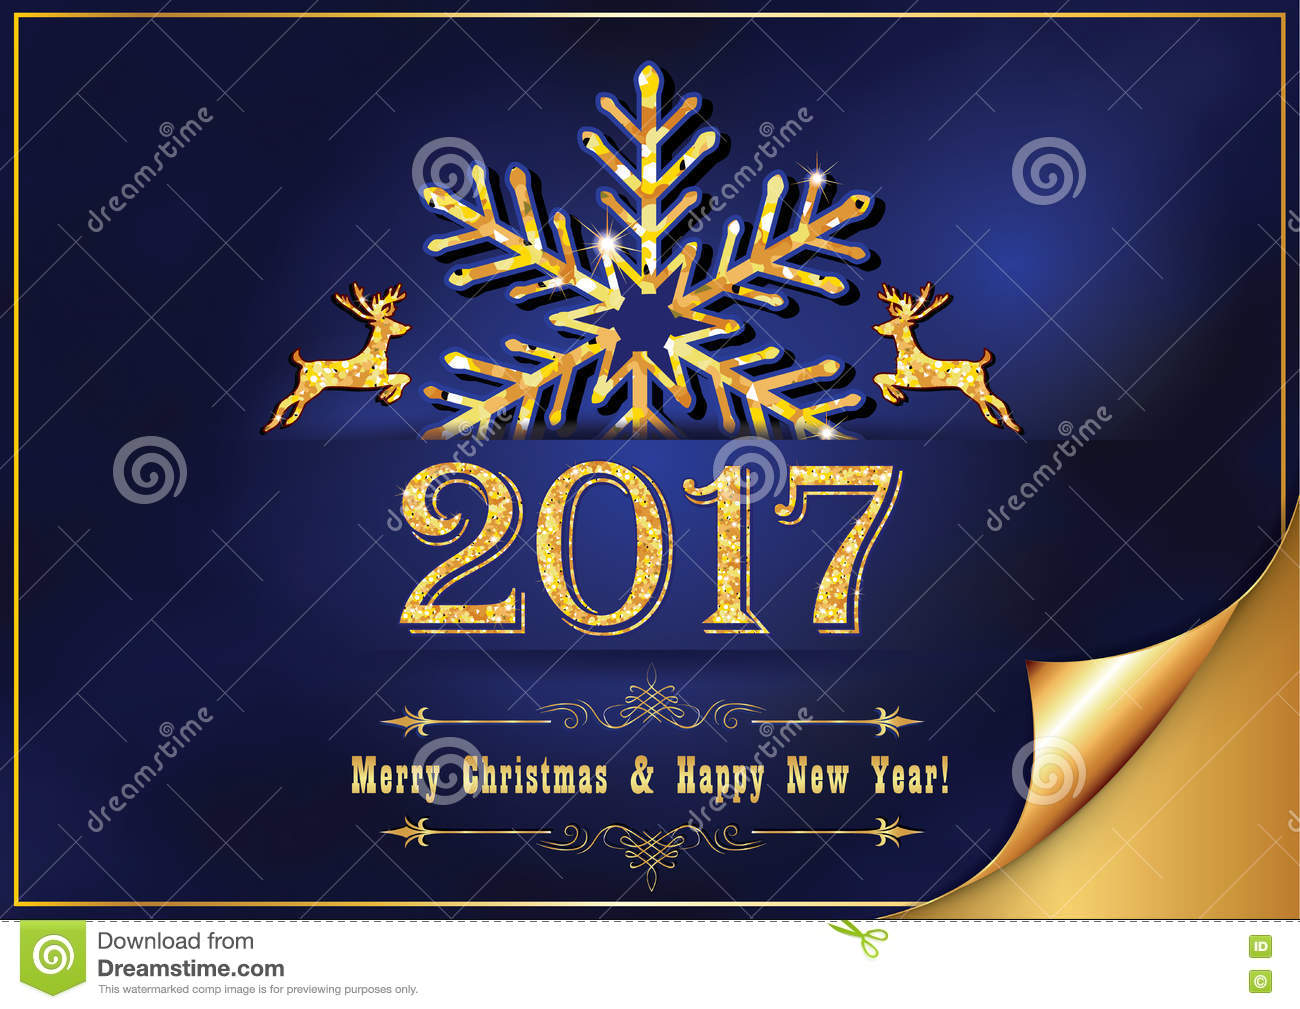 Corporate New Year Greeting Card For Print Stock Image - Image ...